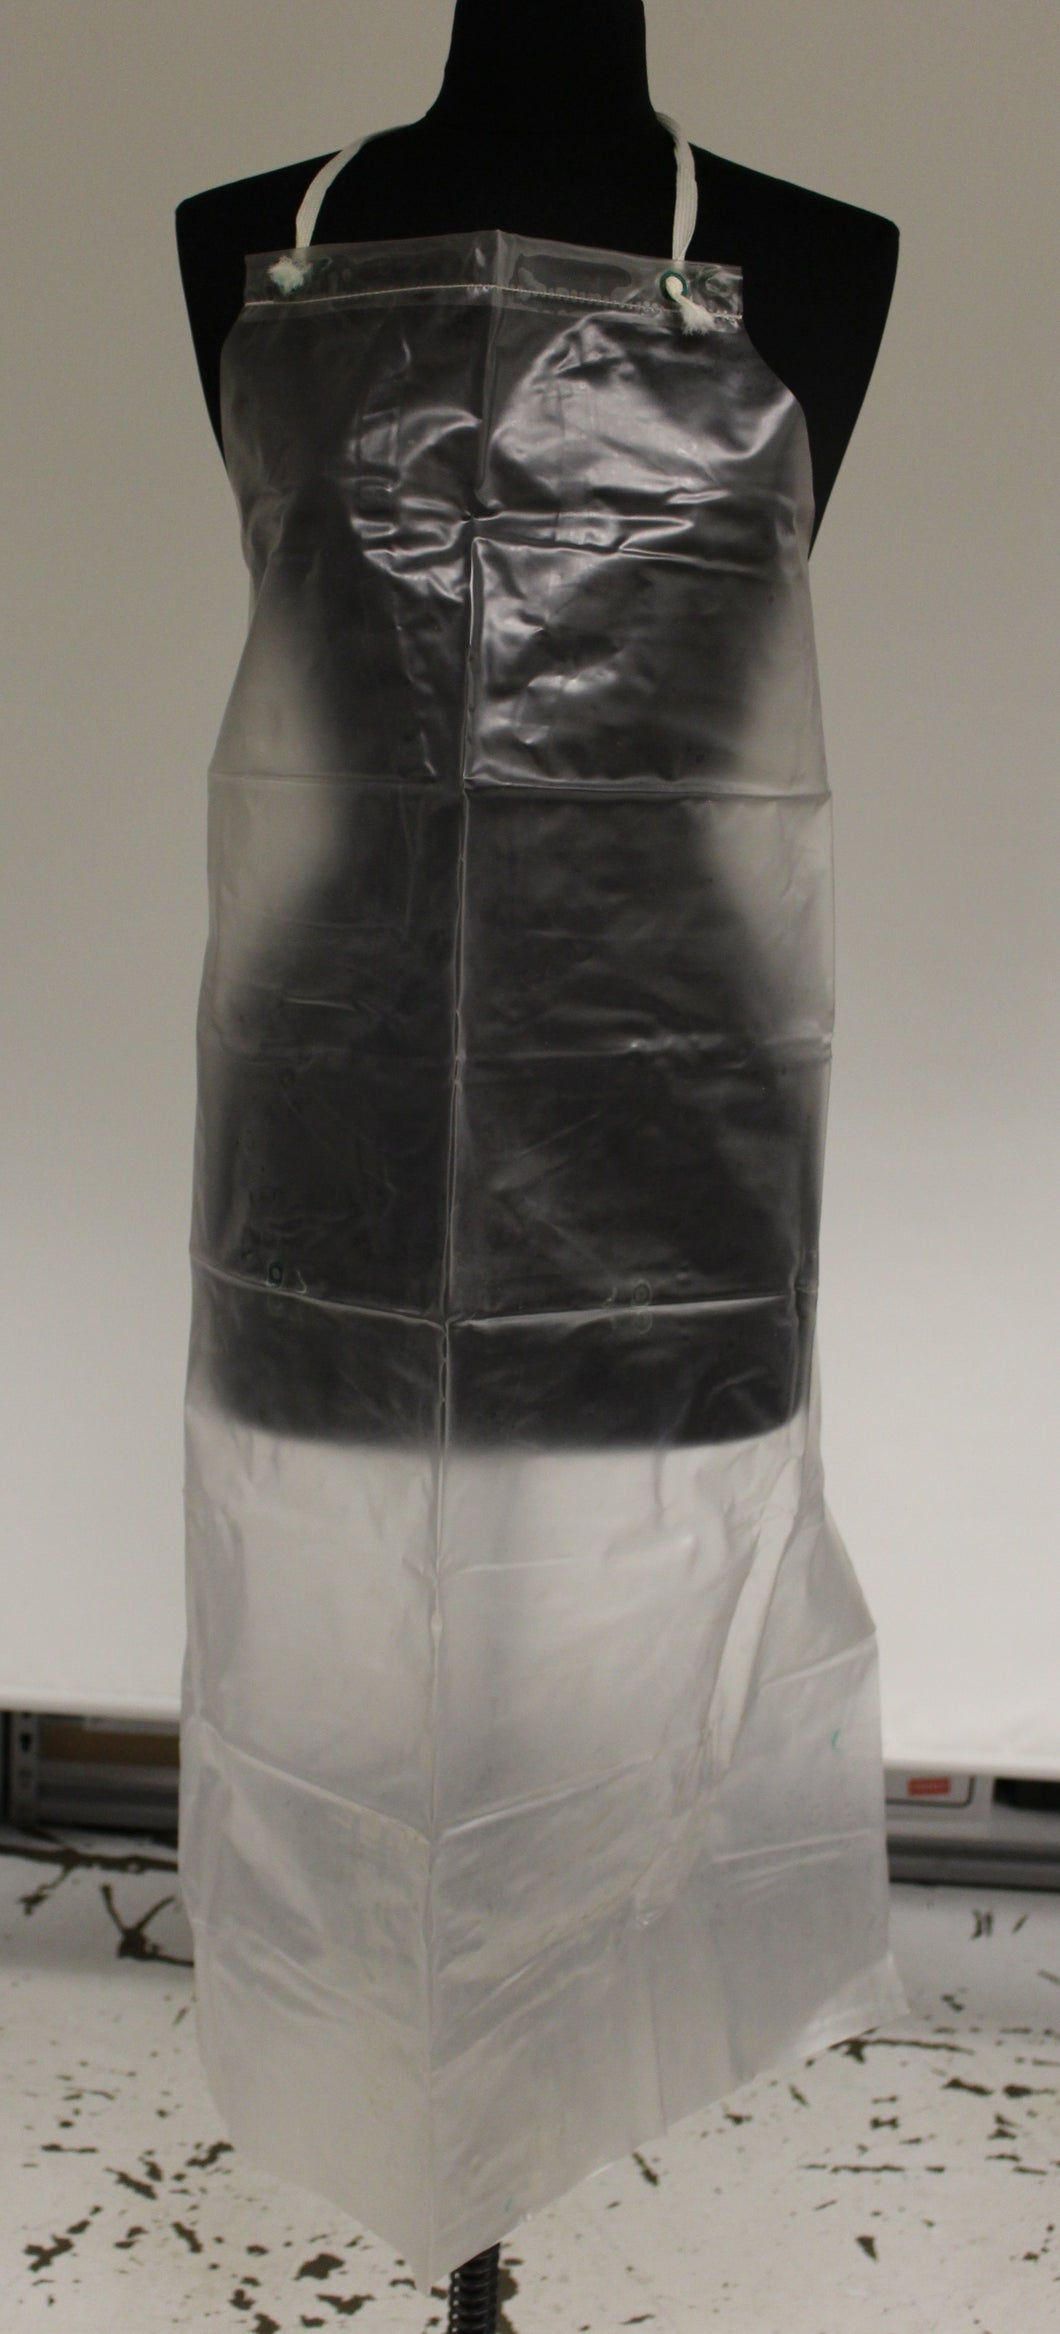 Kitchen Safe Food Handler's Apron, Vinyl / Plastic, 34